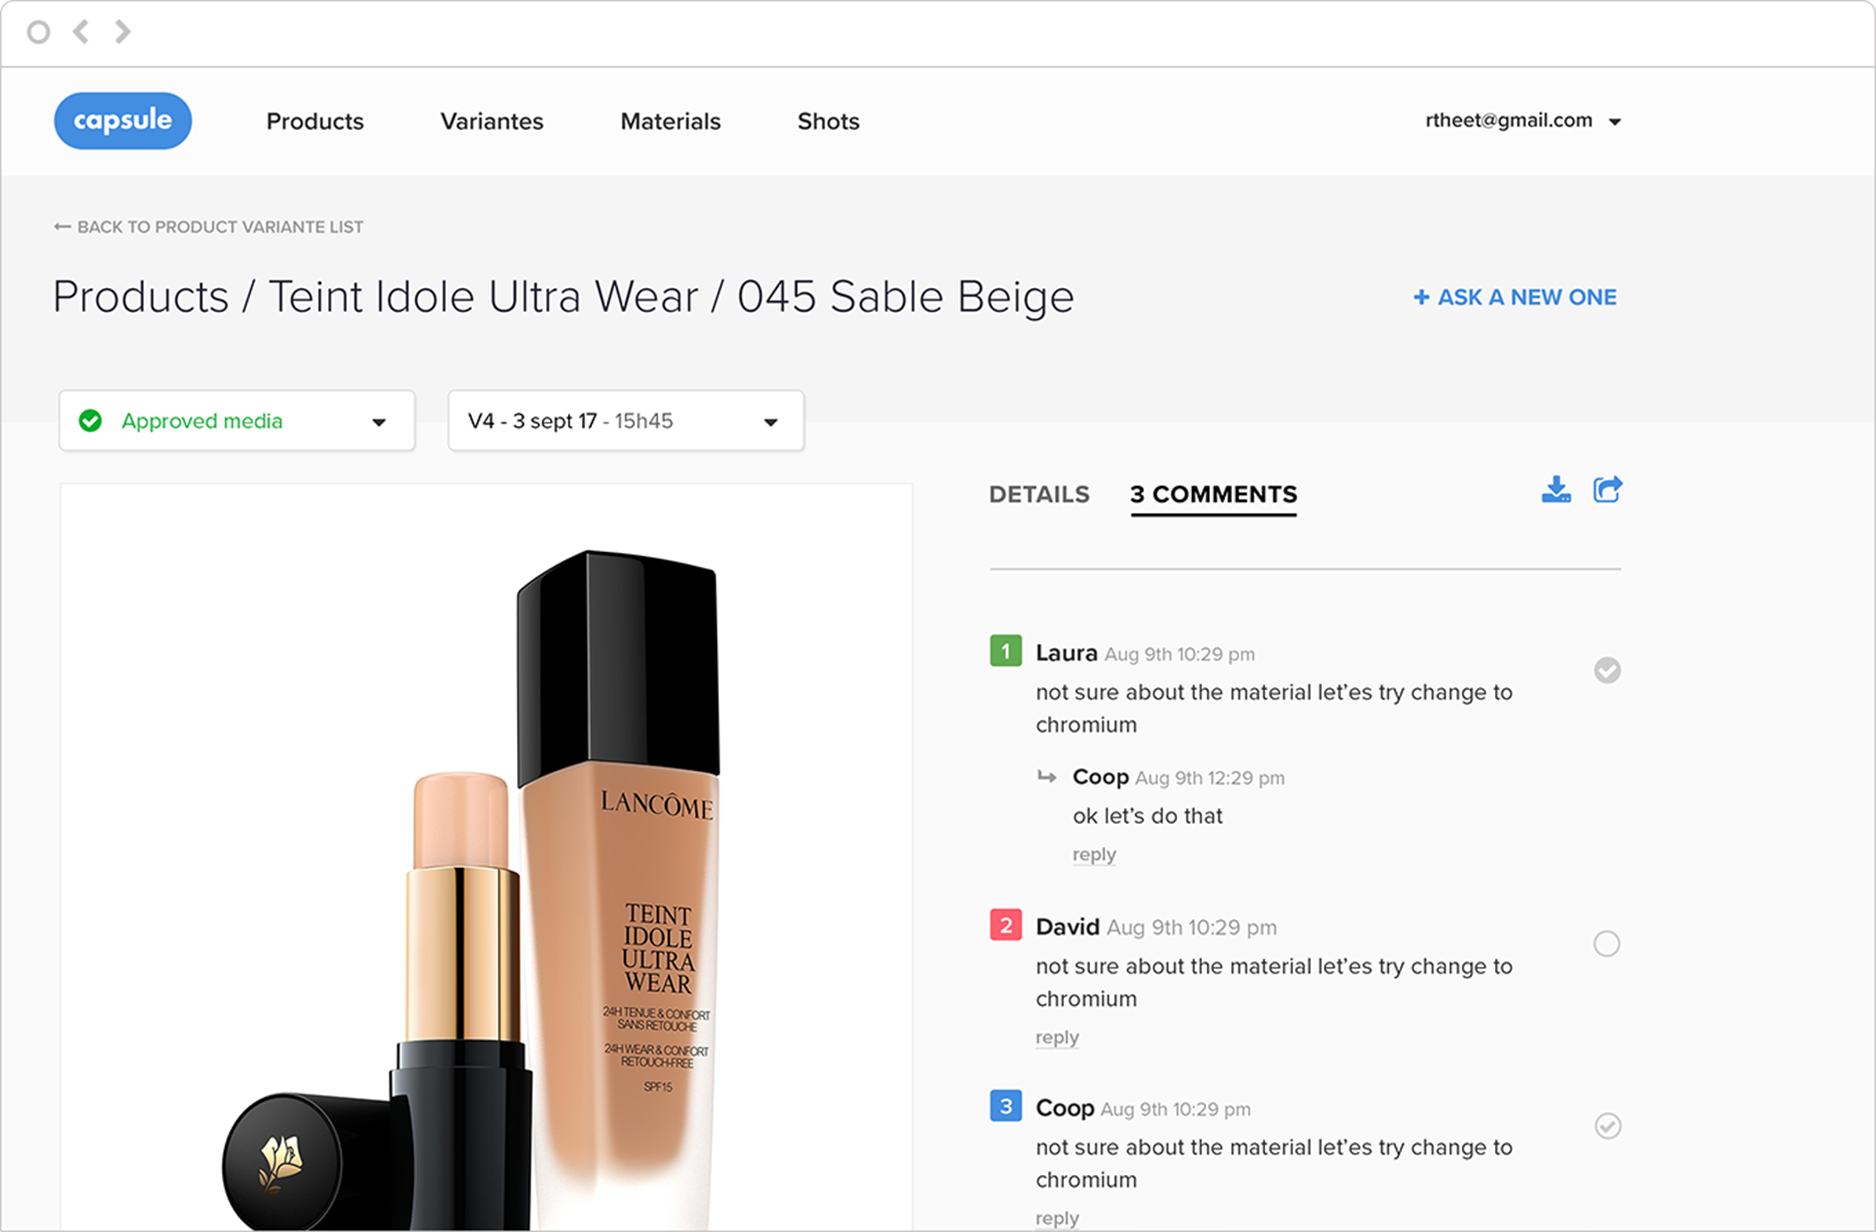 screen-Collab-Lancome.png